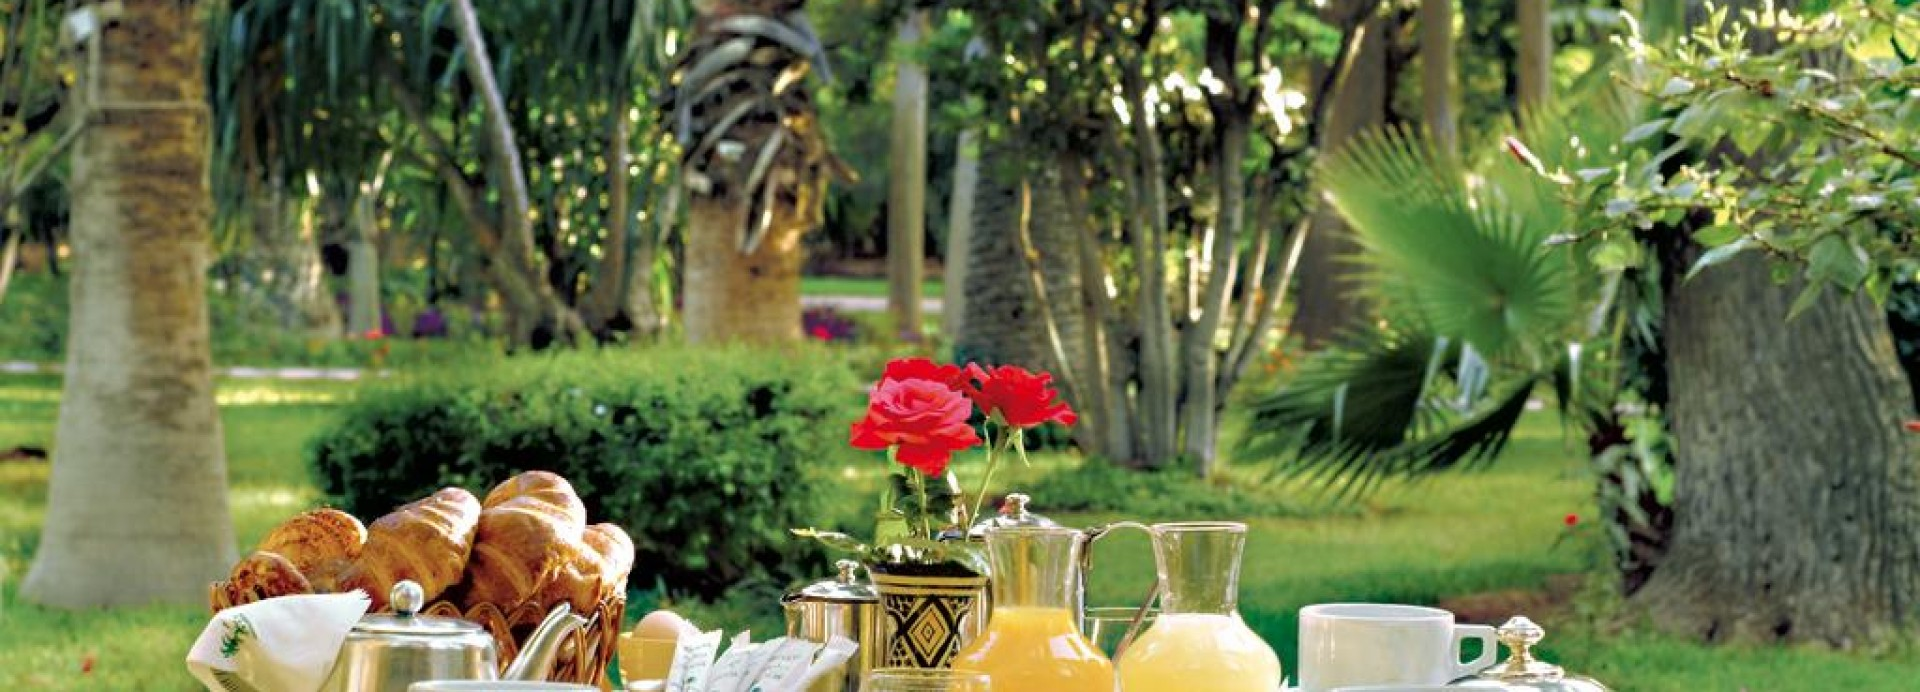 es saadi hotel & resort - golf *****